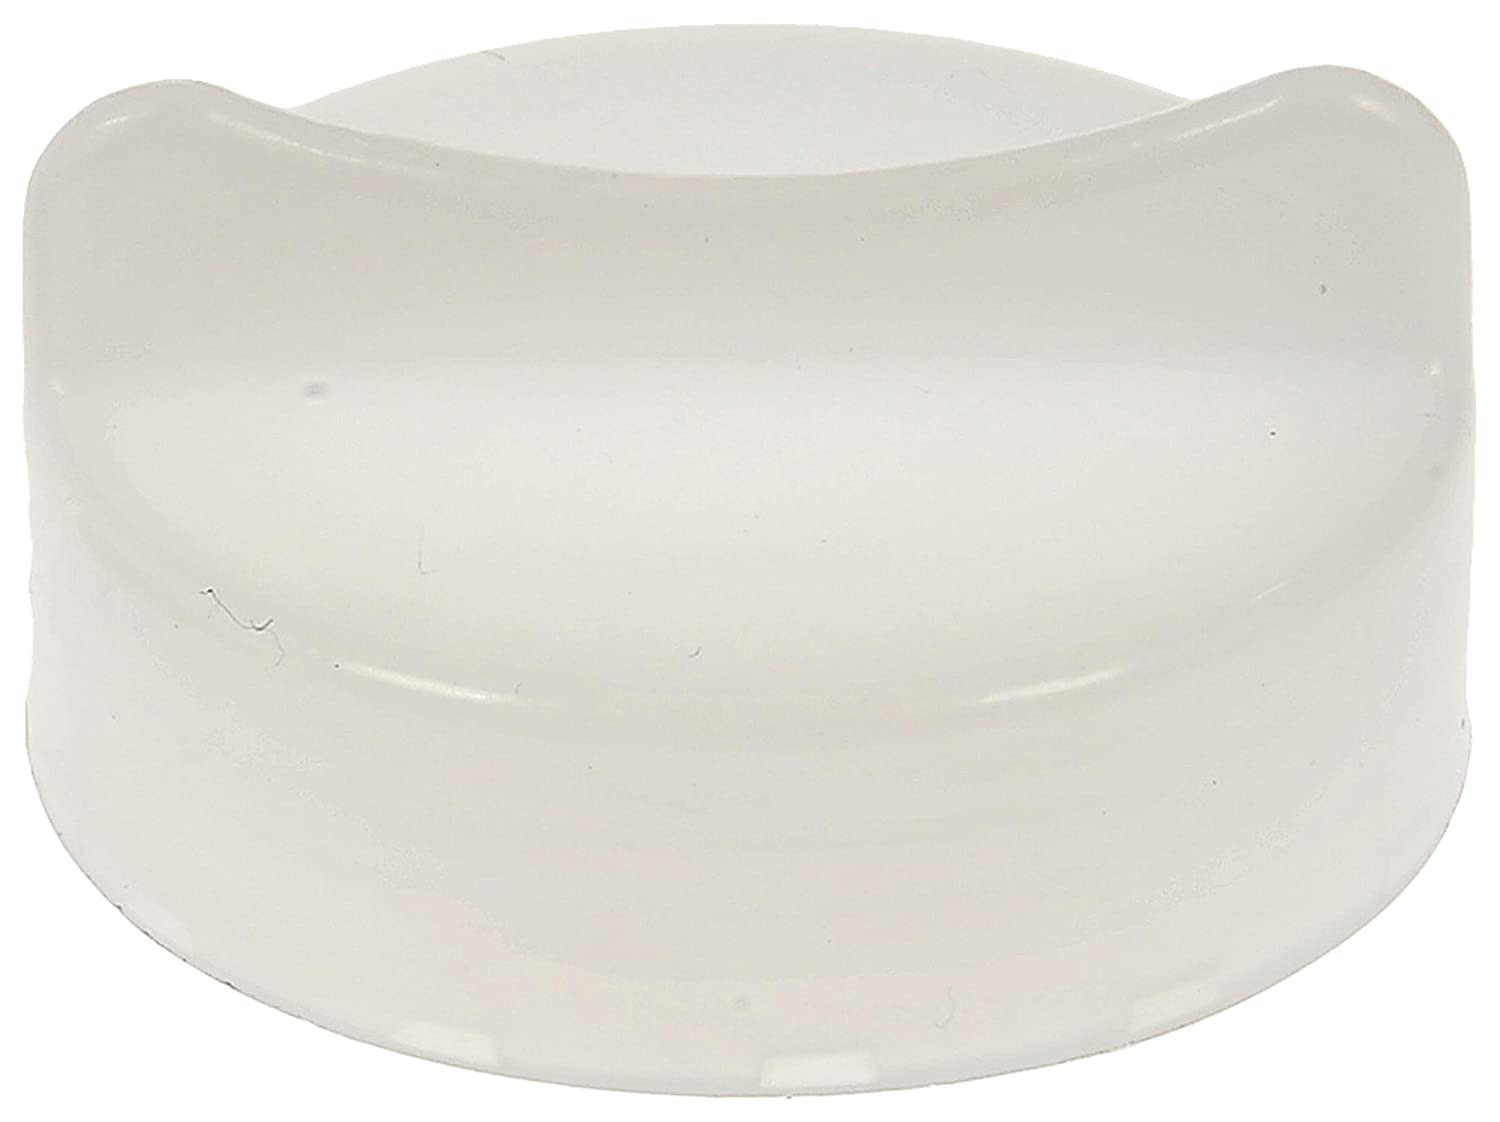 Dorman 54227 Engine Coolant Recovery Tank Cap Dorman - HELP